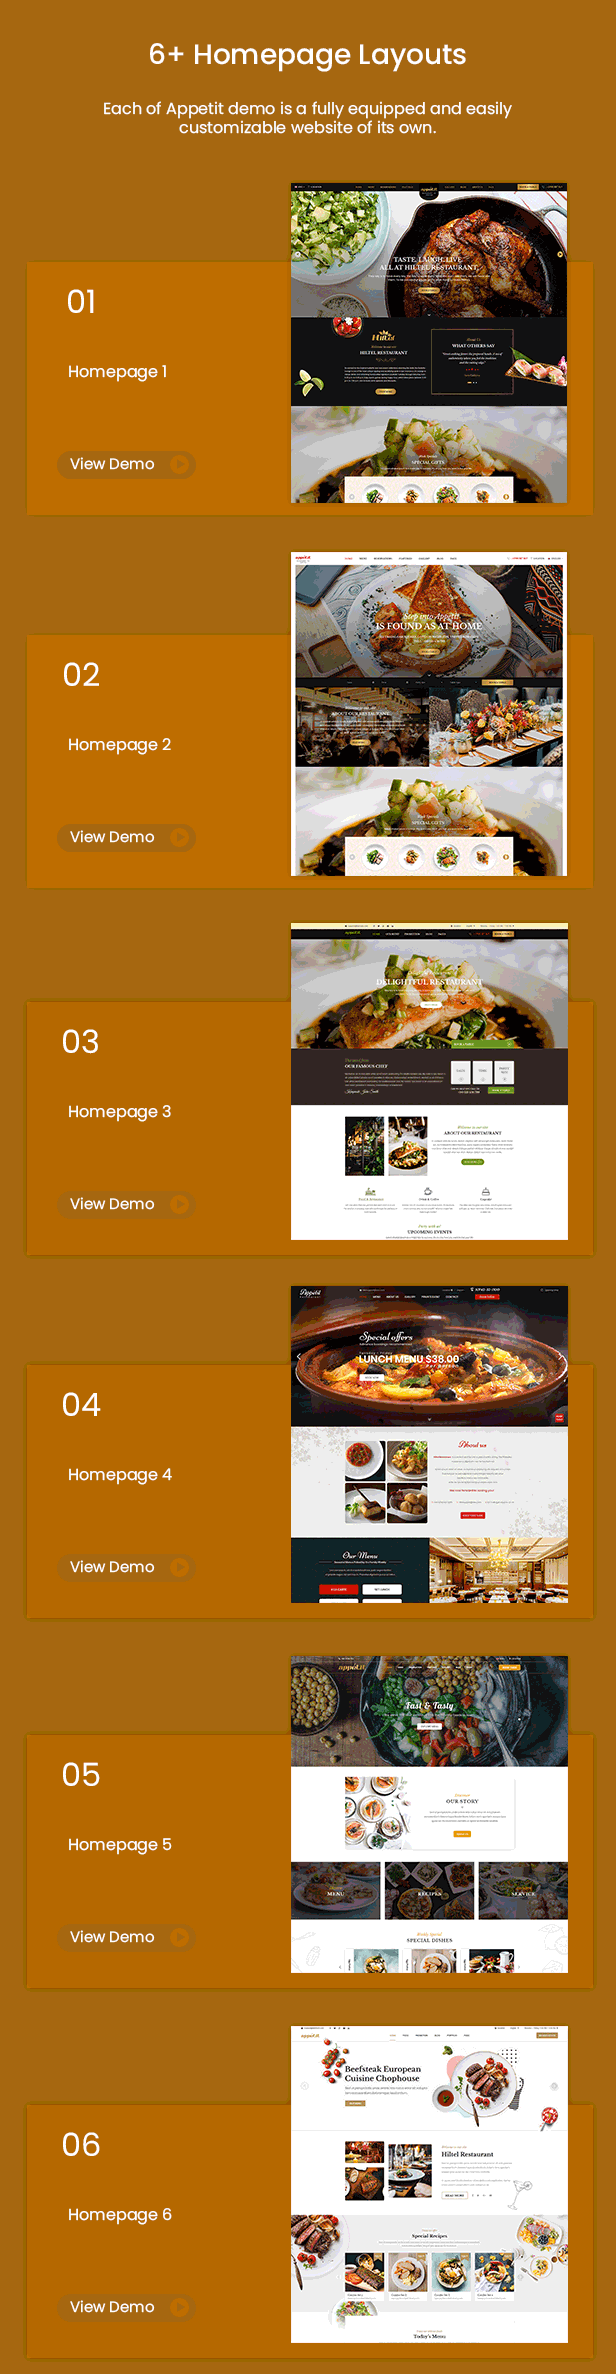 Homepage Appetit - Premium Food & Restaurant WordPress Theme